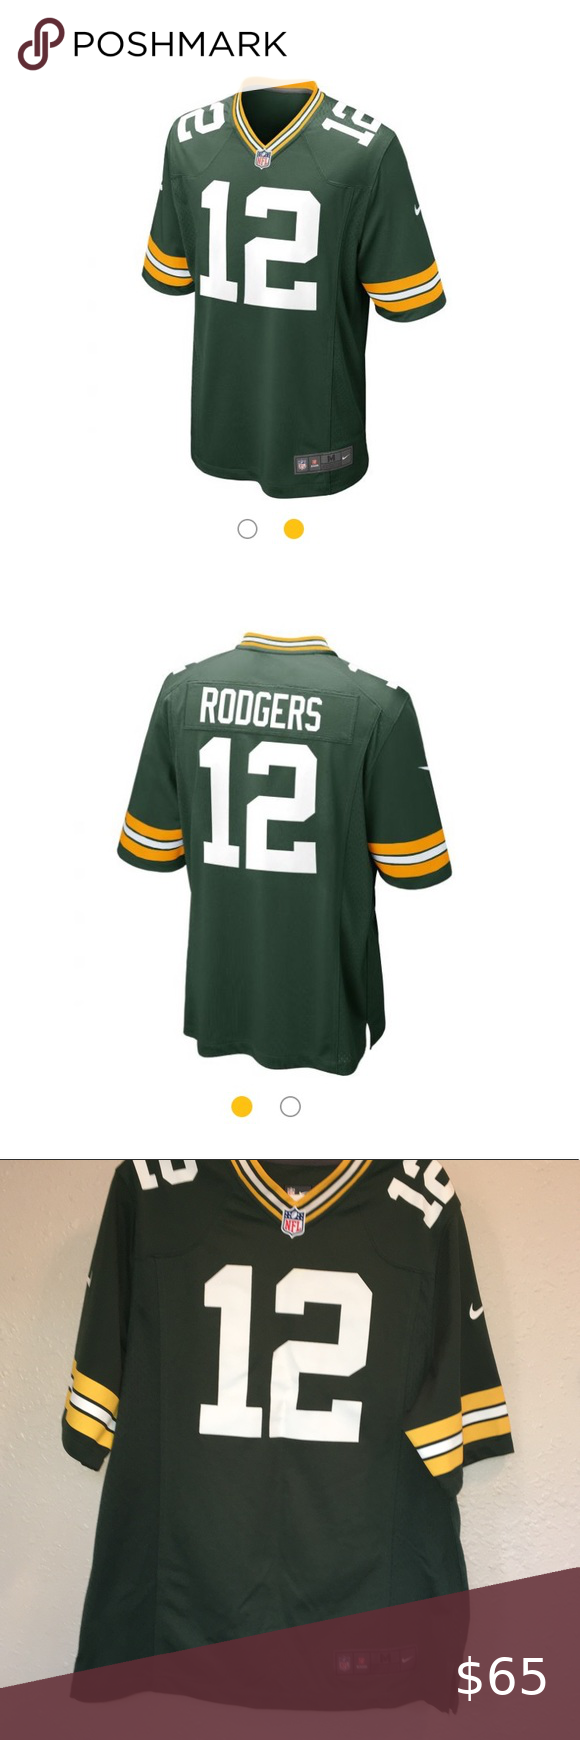 Nfl Aaron Rodgers Home Game Jersey In 2020 Nfl Nfl Shirts Aaron Rodgers